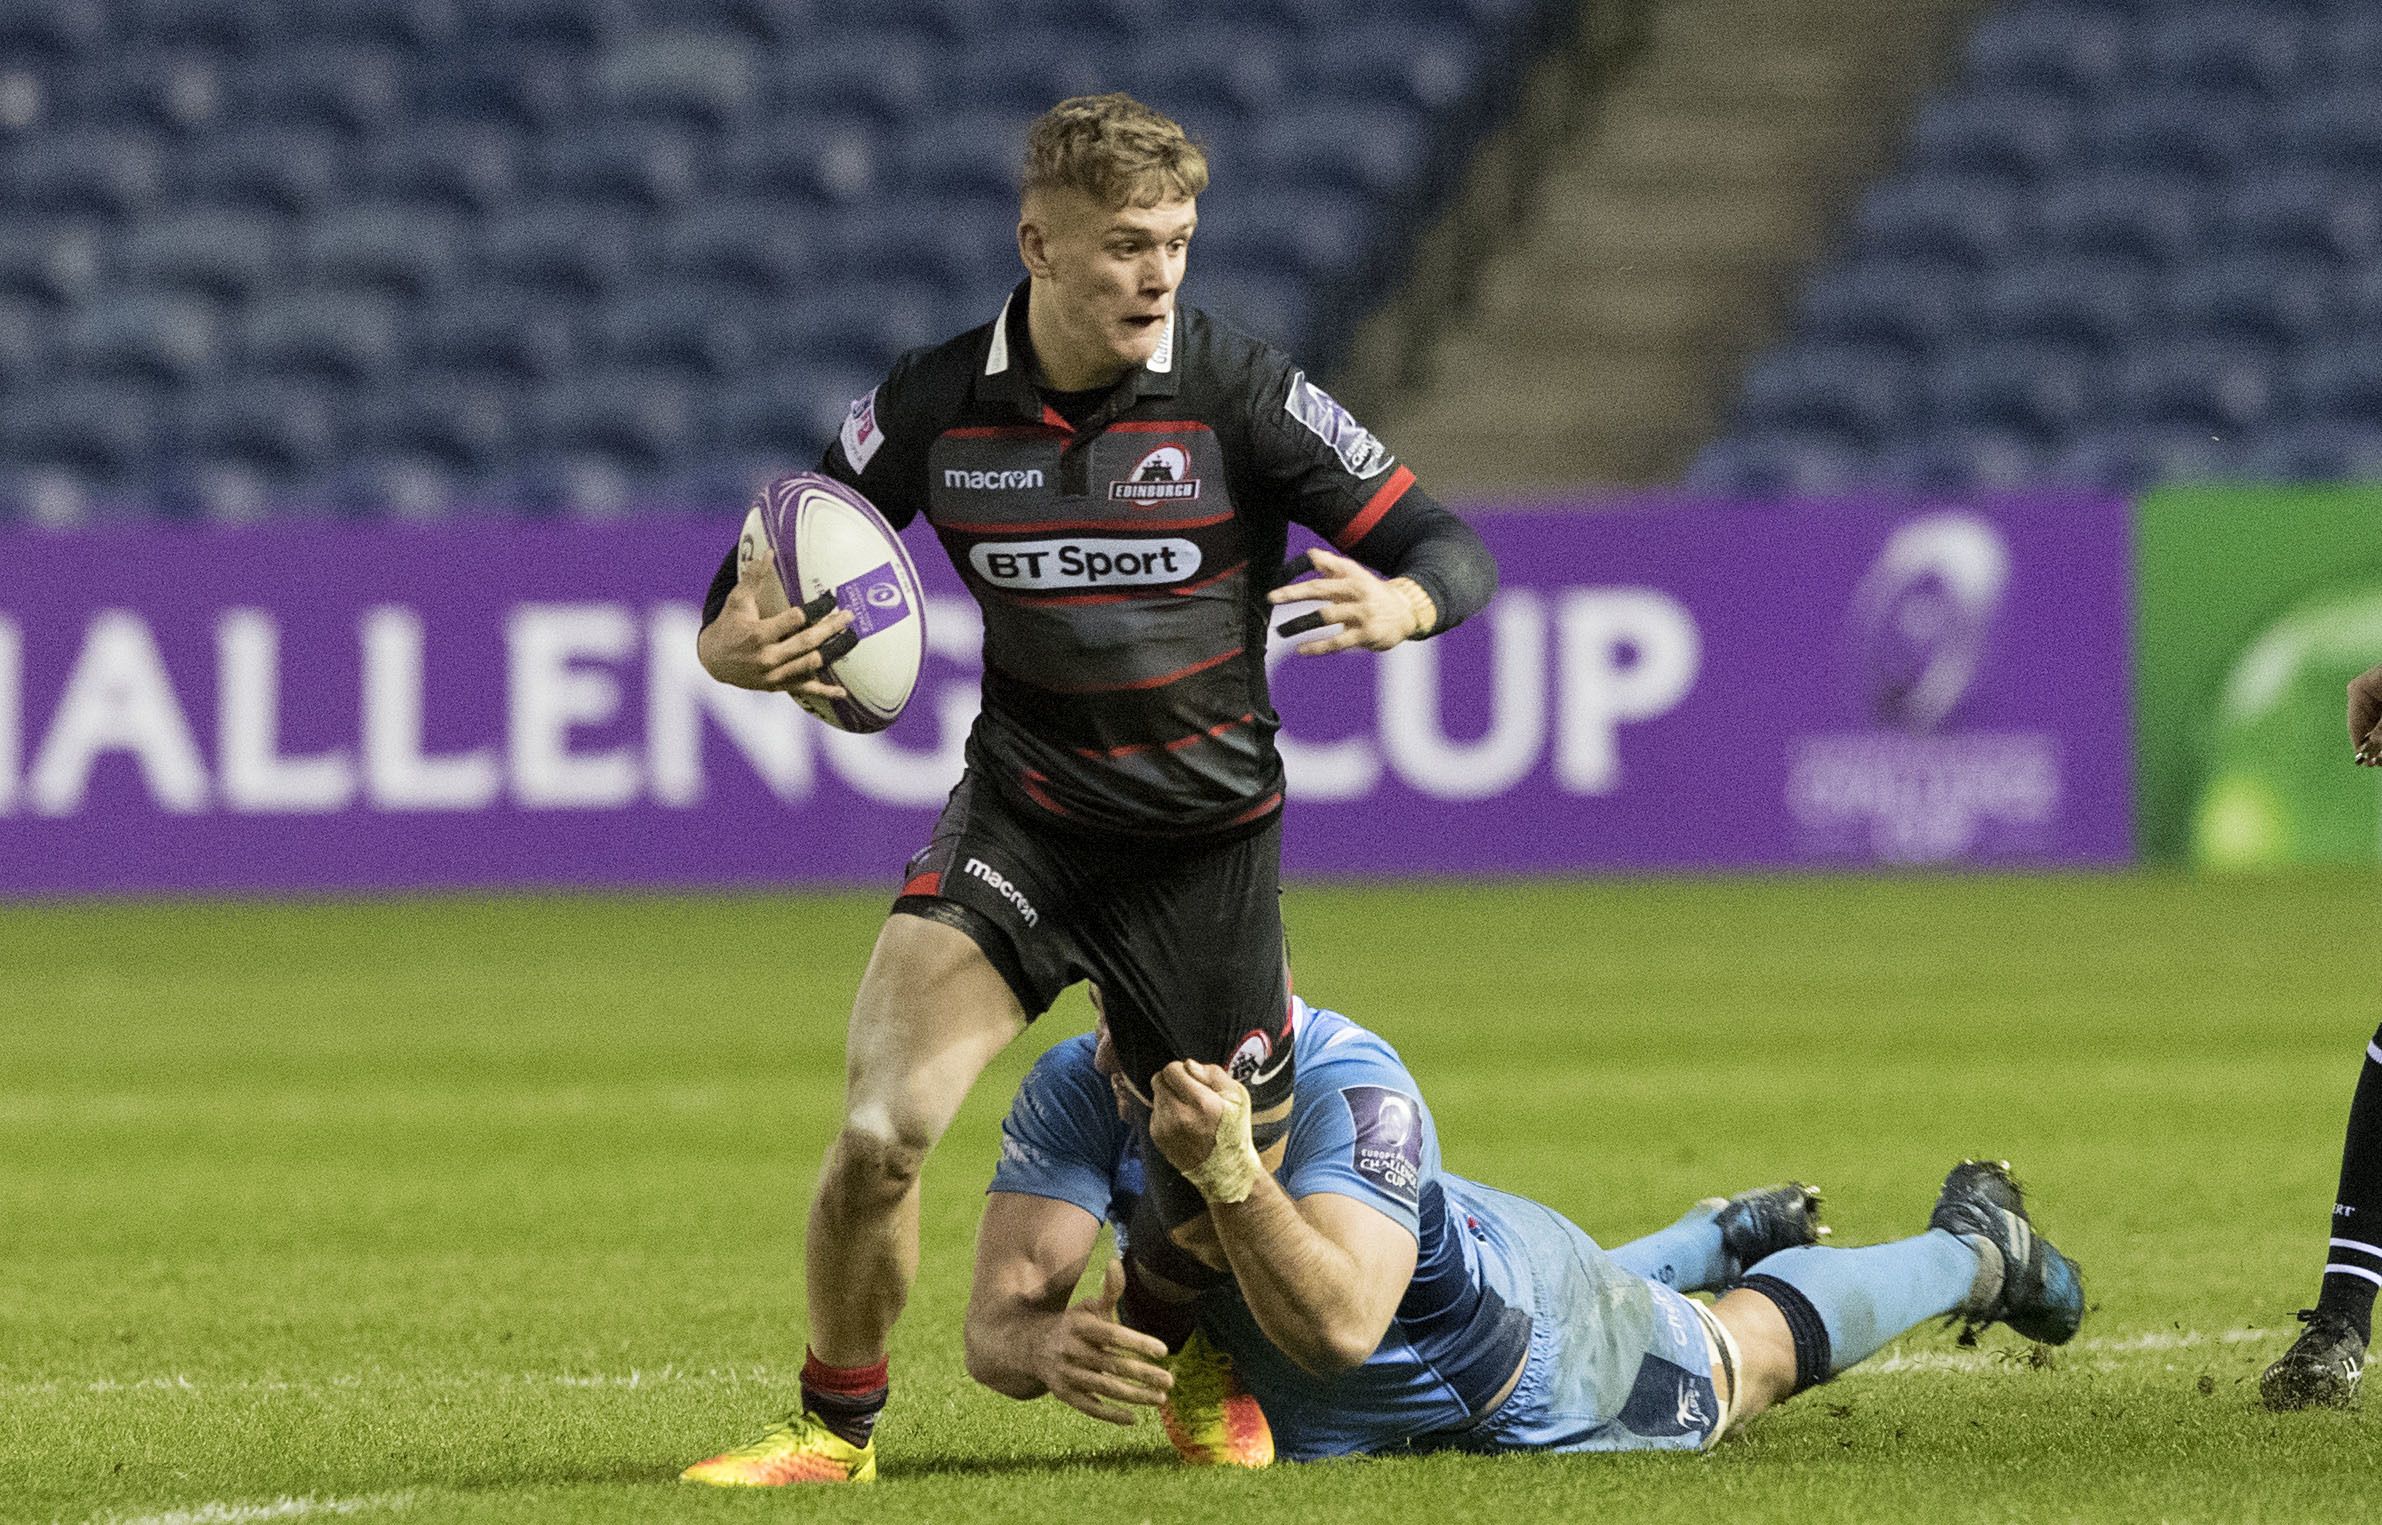 Darcy Graham scored a try from the wing on debut but will play full back against Krasny Yar.